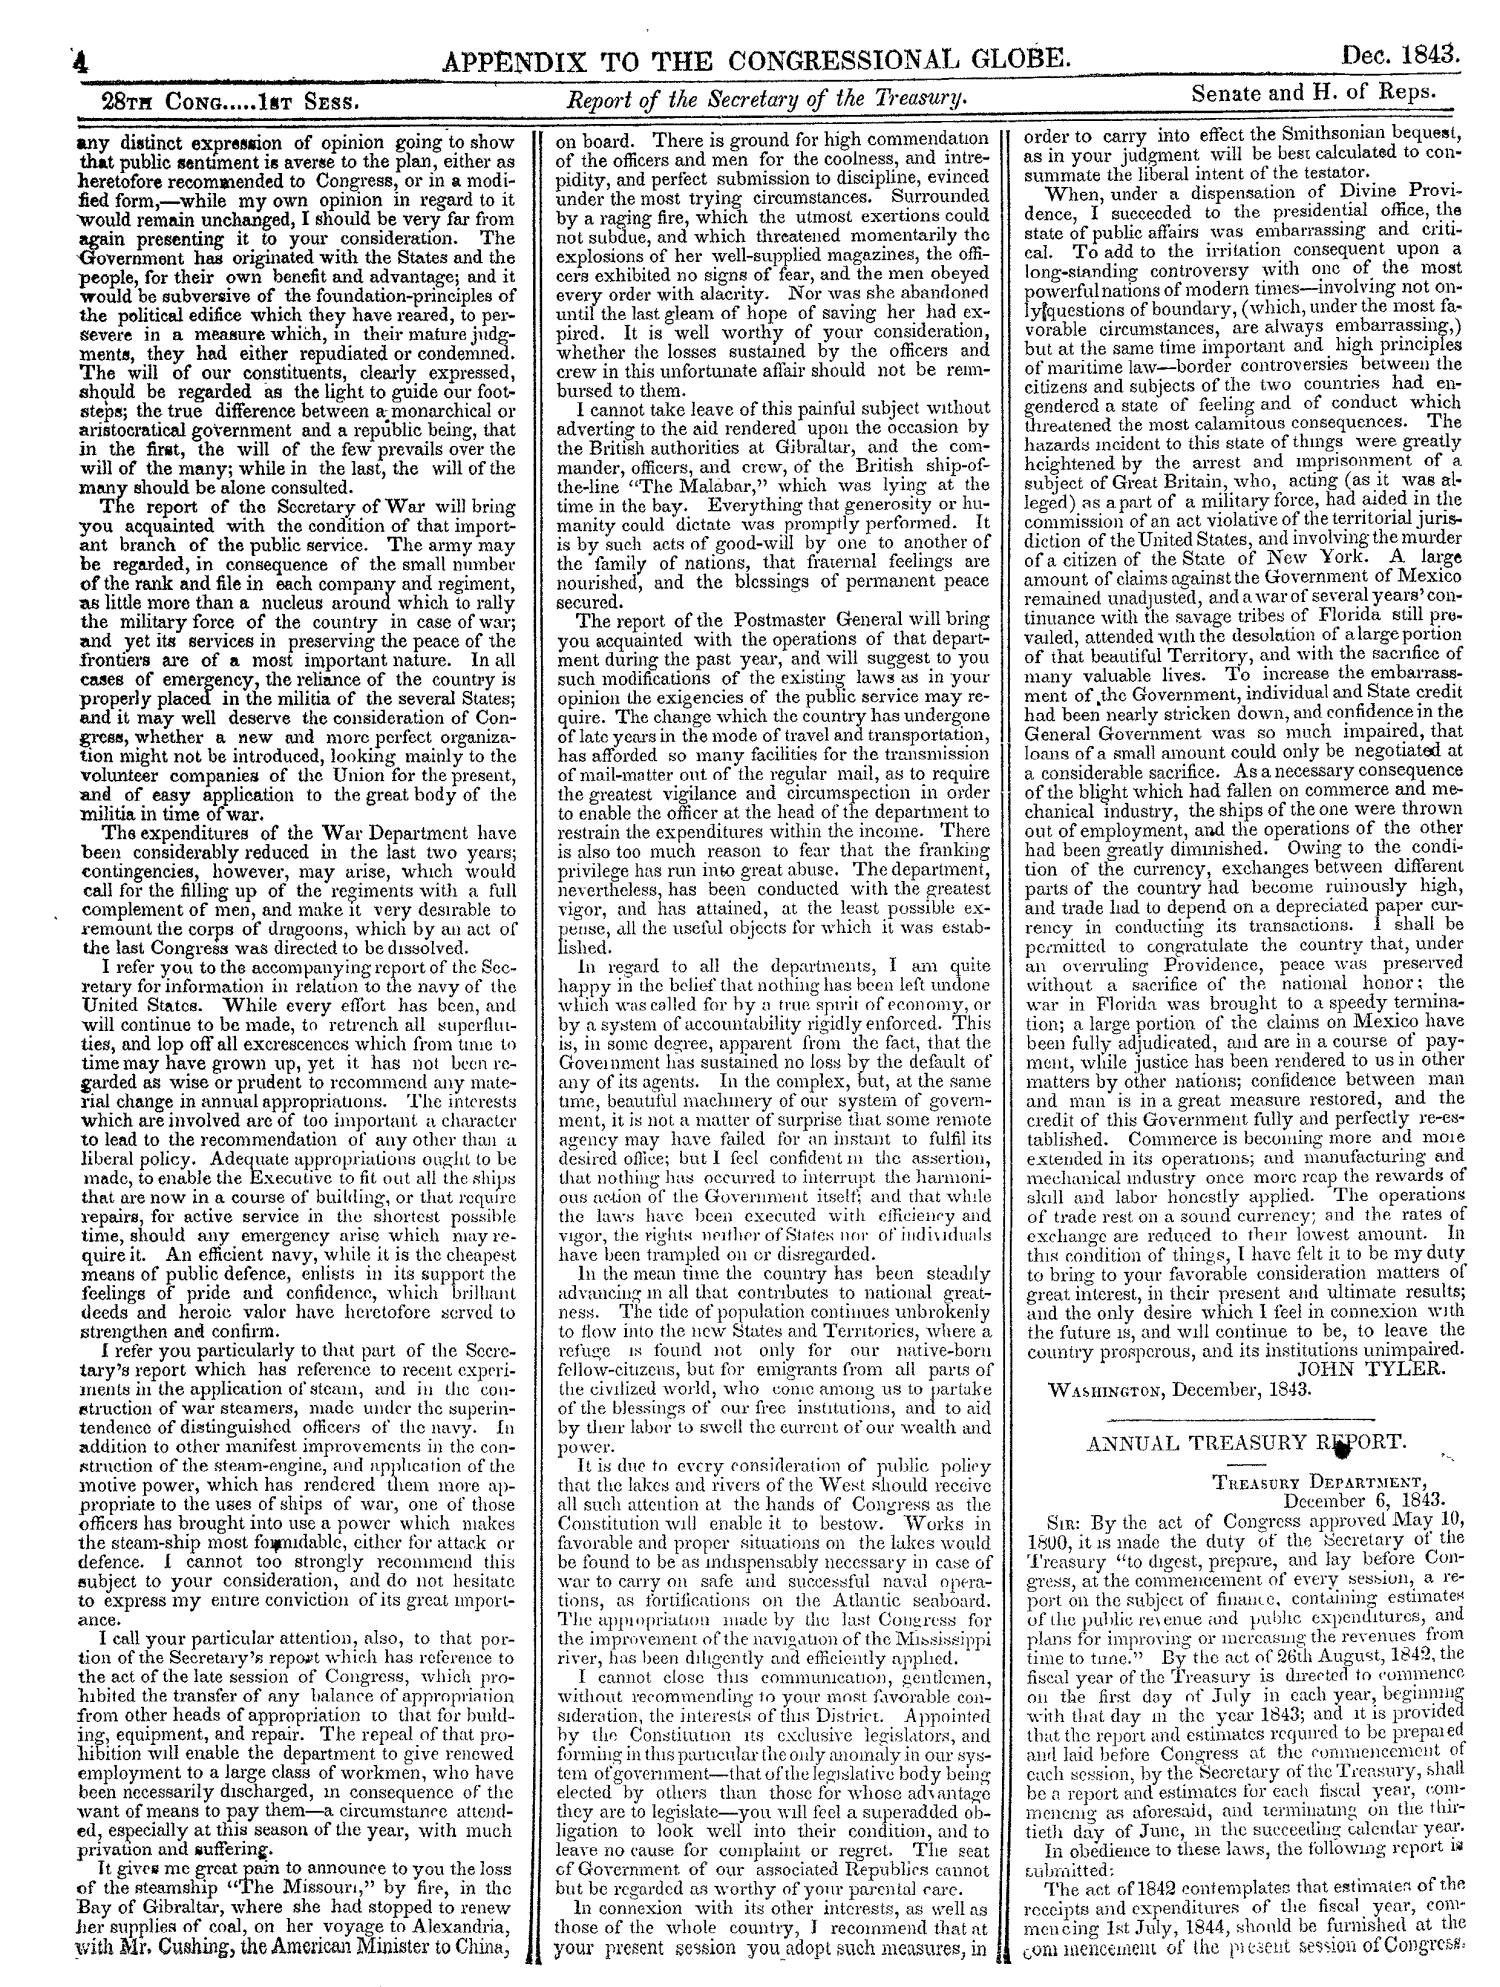 The Congressional Globe, Volume 13, Part 2: Twenty-Eighth Congress, First Session                                                                                                      4